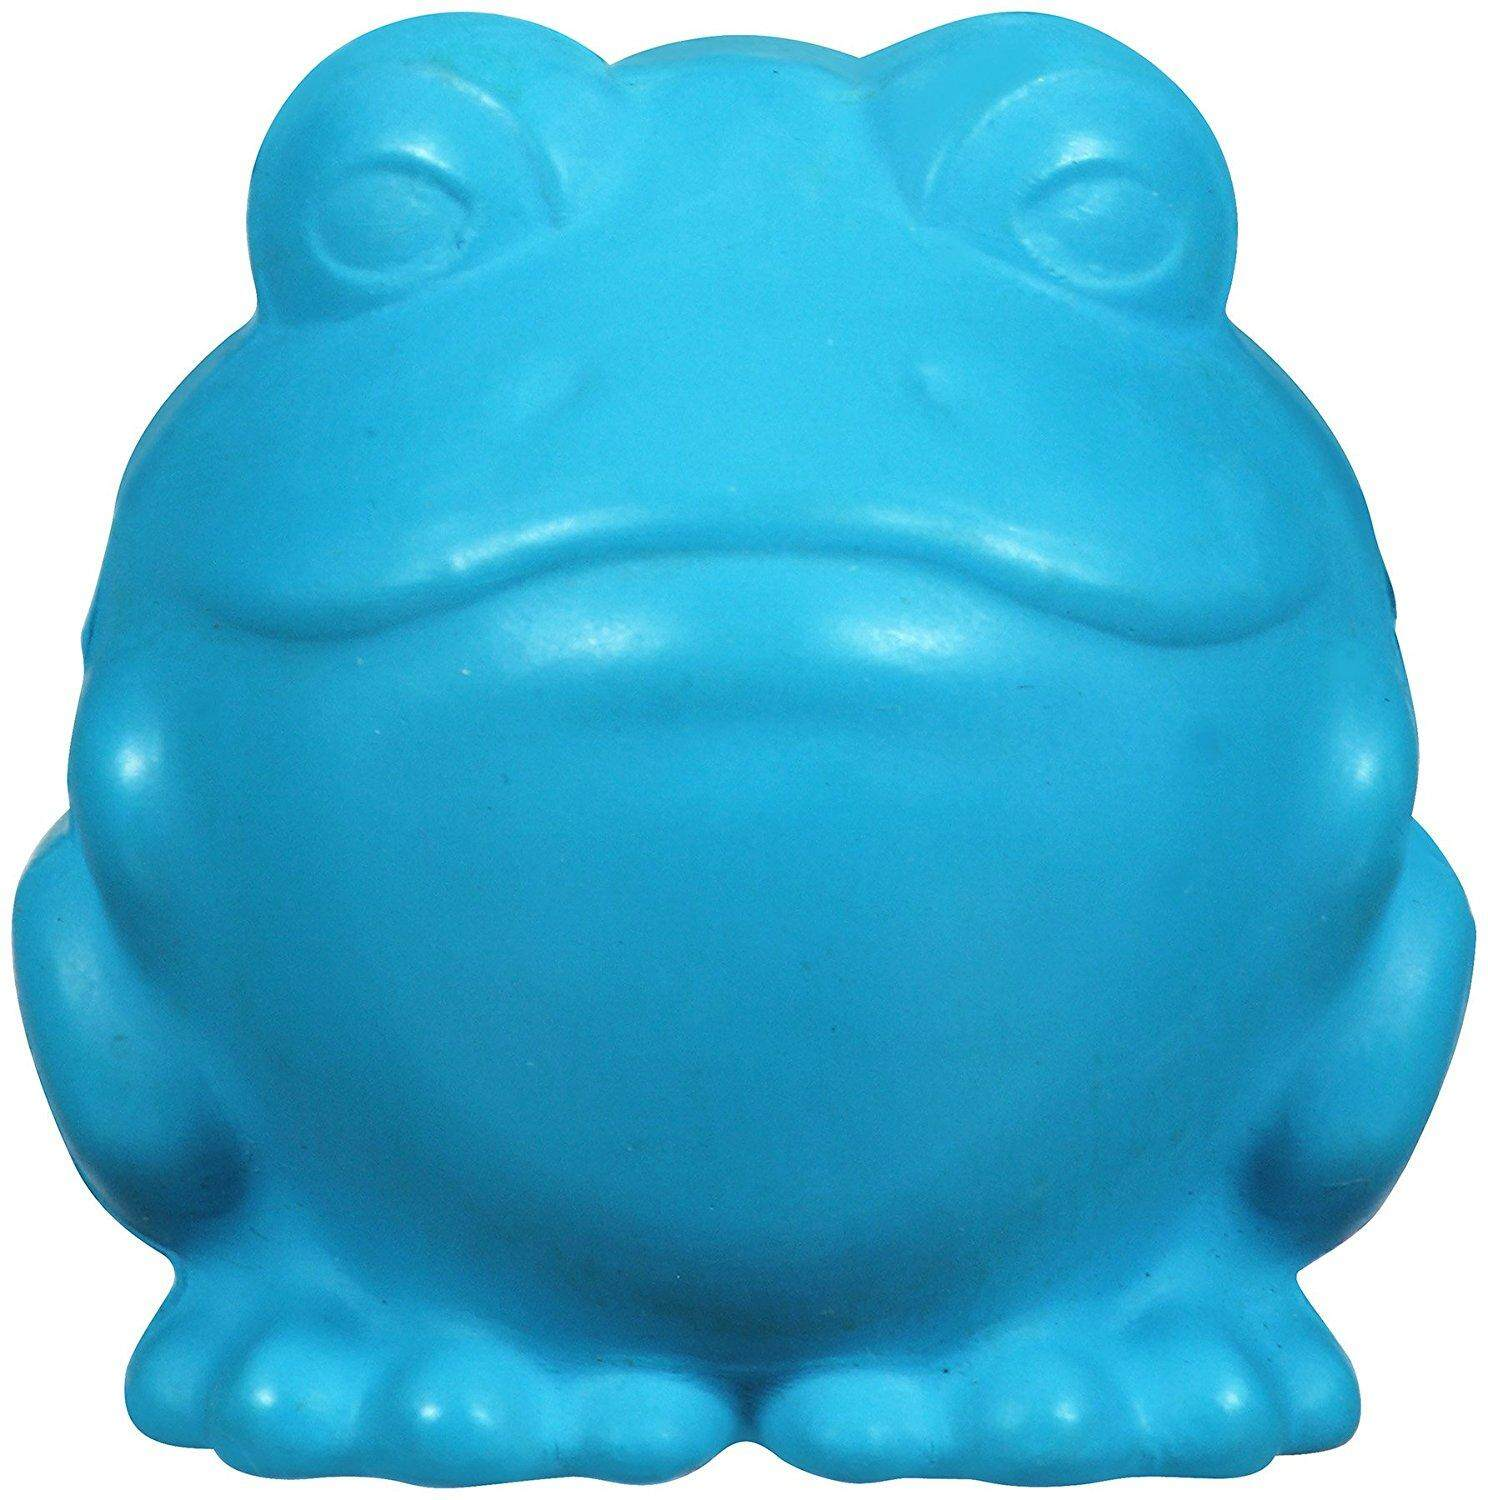 [JW PET TOYS] Darwin the Frog Dog Squeaky Toy - Large